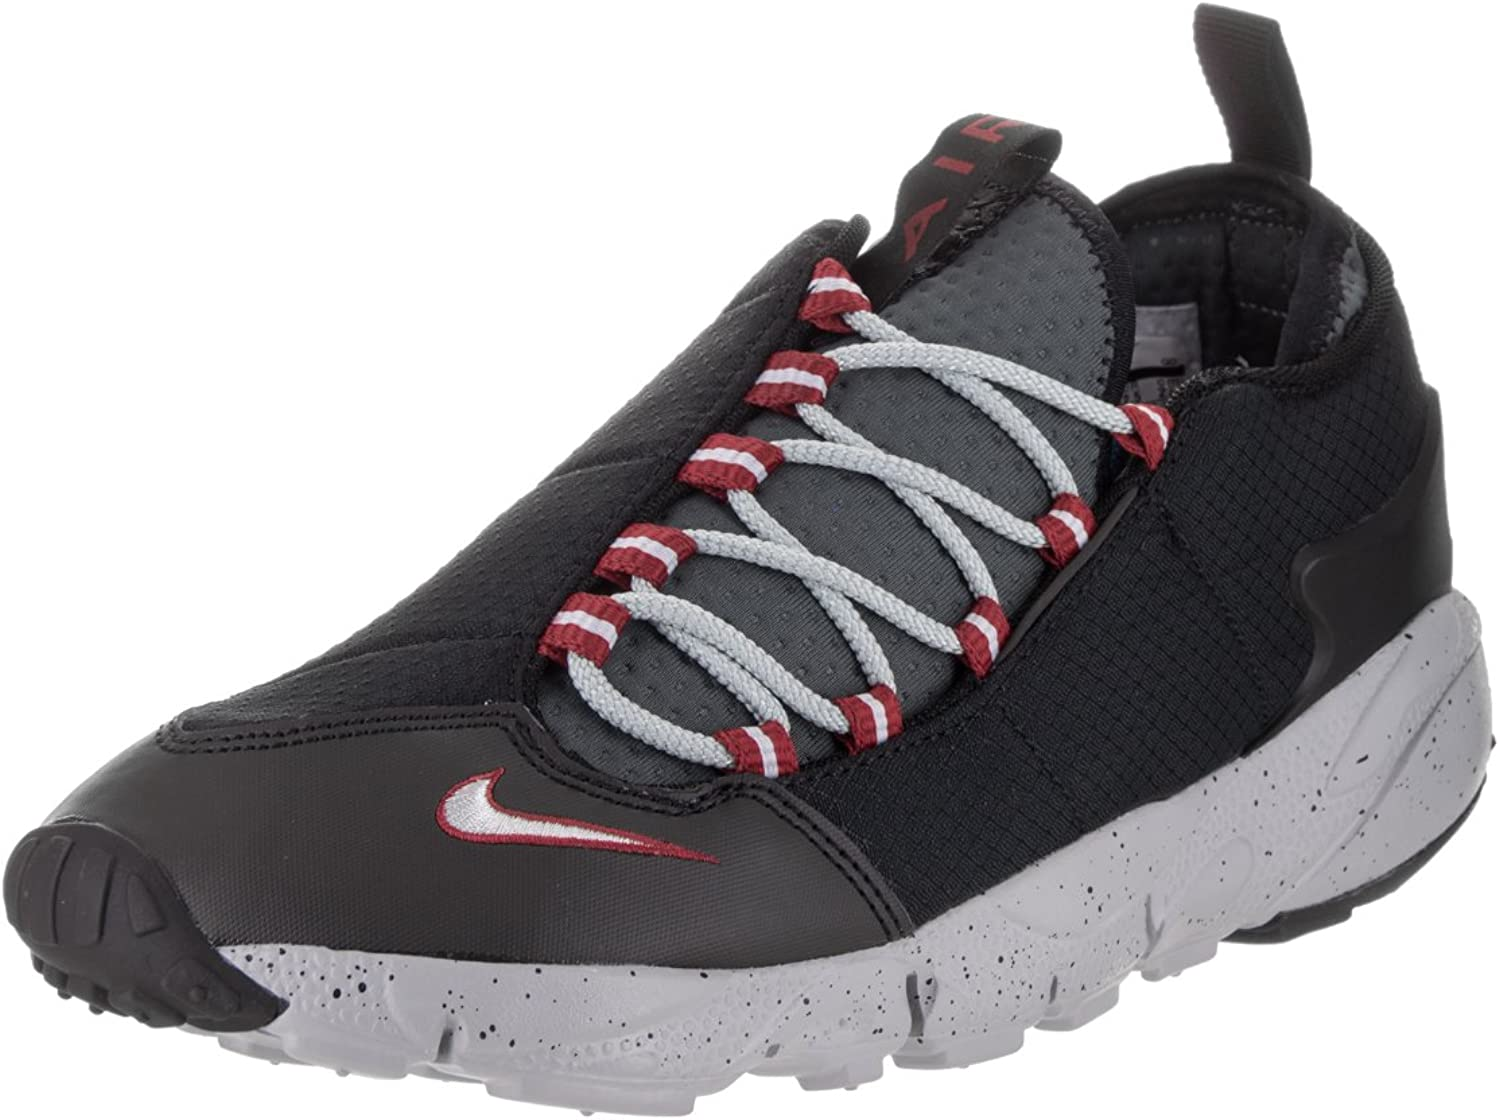 NIKE Lady Move Fit Cross Training shoes